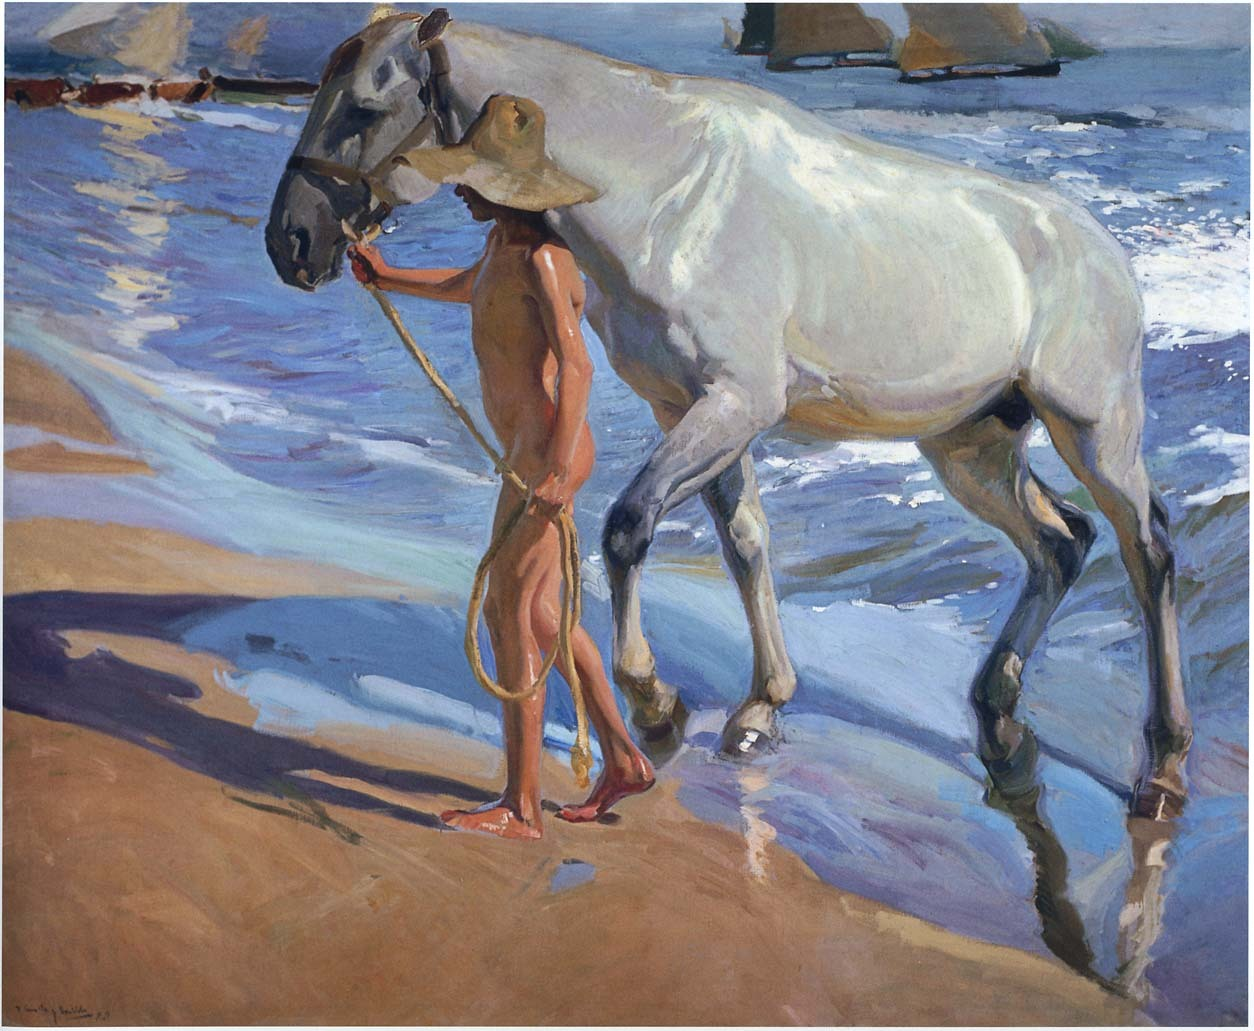 Joaquin Sorolla y Bastida [Spanish Realist/Impressionist Painter, 1863-1923] The Horse Bath, 1909 oil on canvas Museo Sorolla, Madrid (Spain)